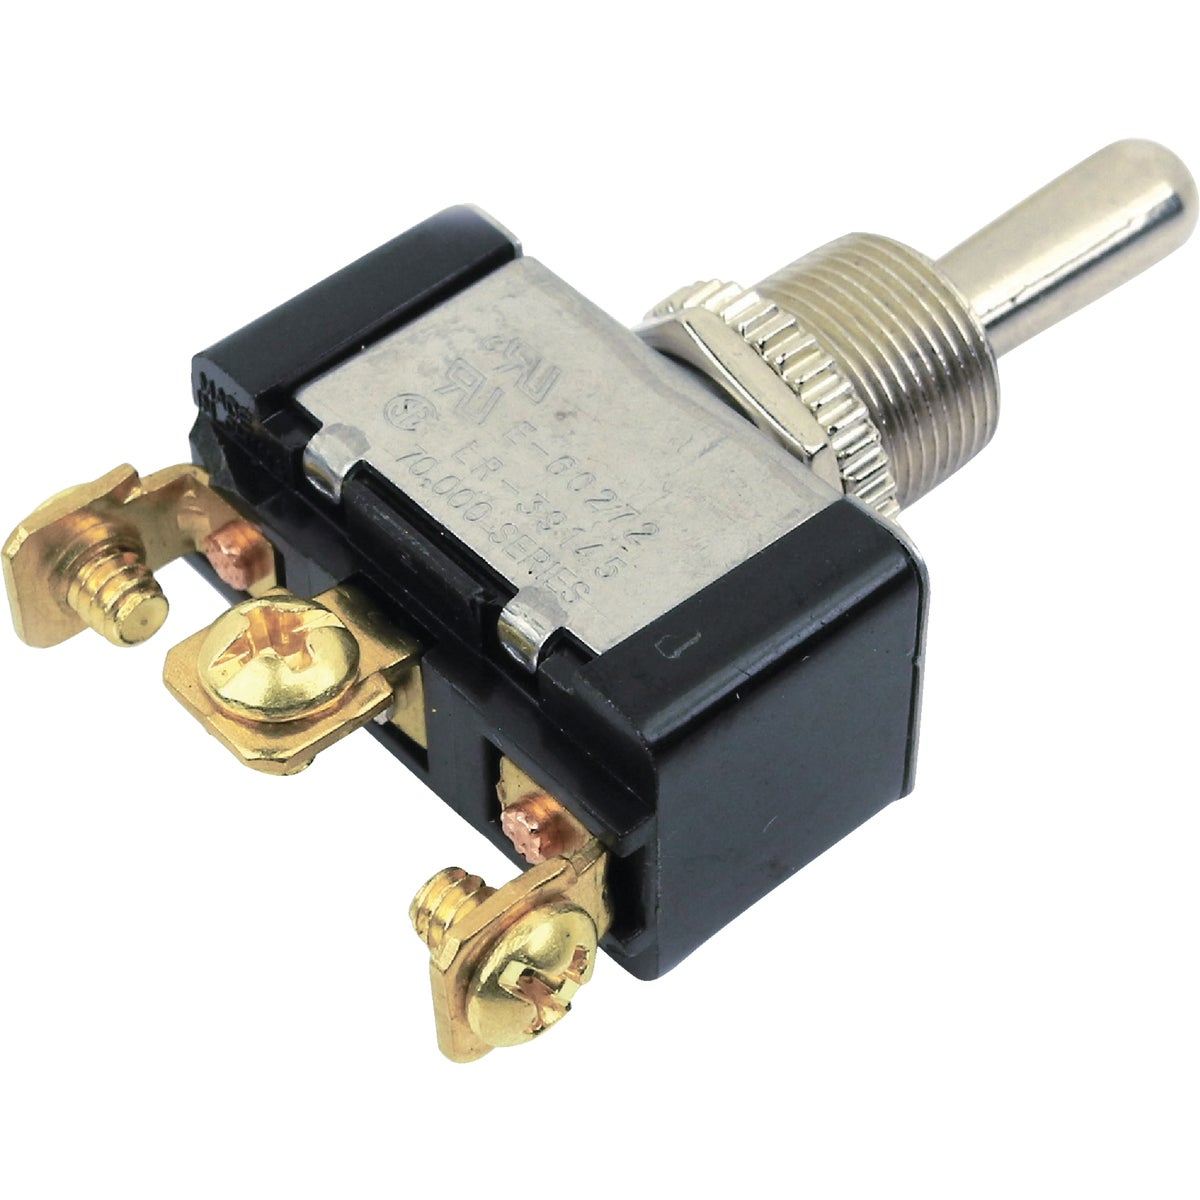 3POS TOGGLE SWITCH - 12161 by Seachoice Prod